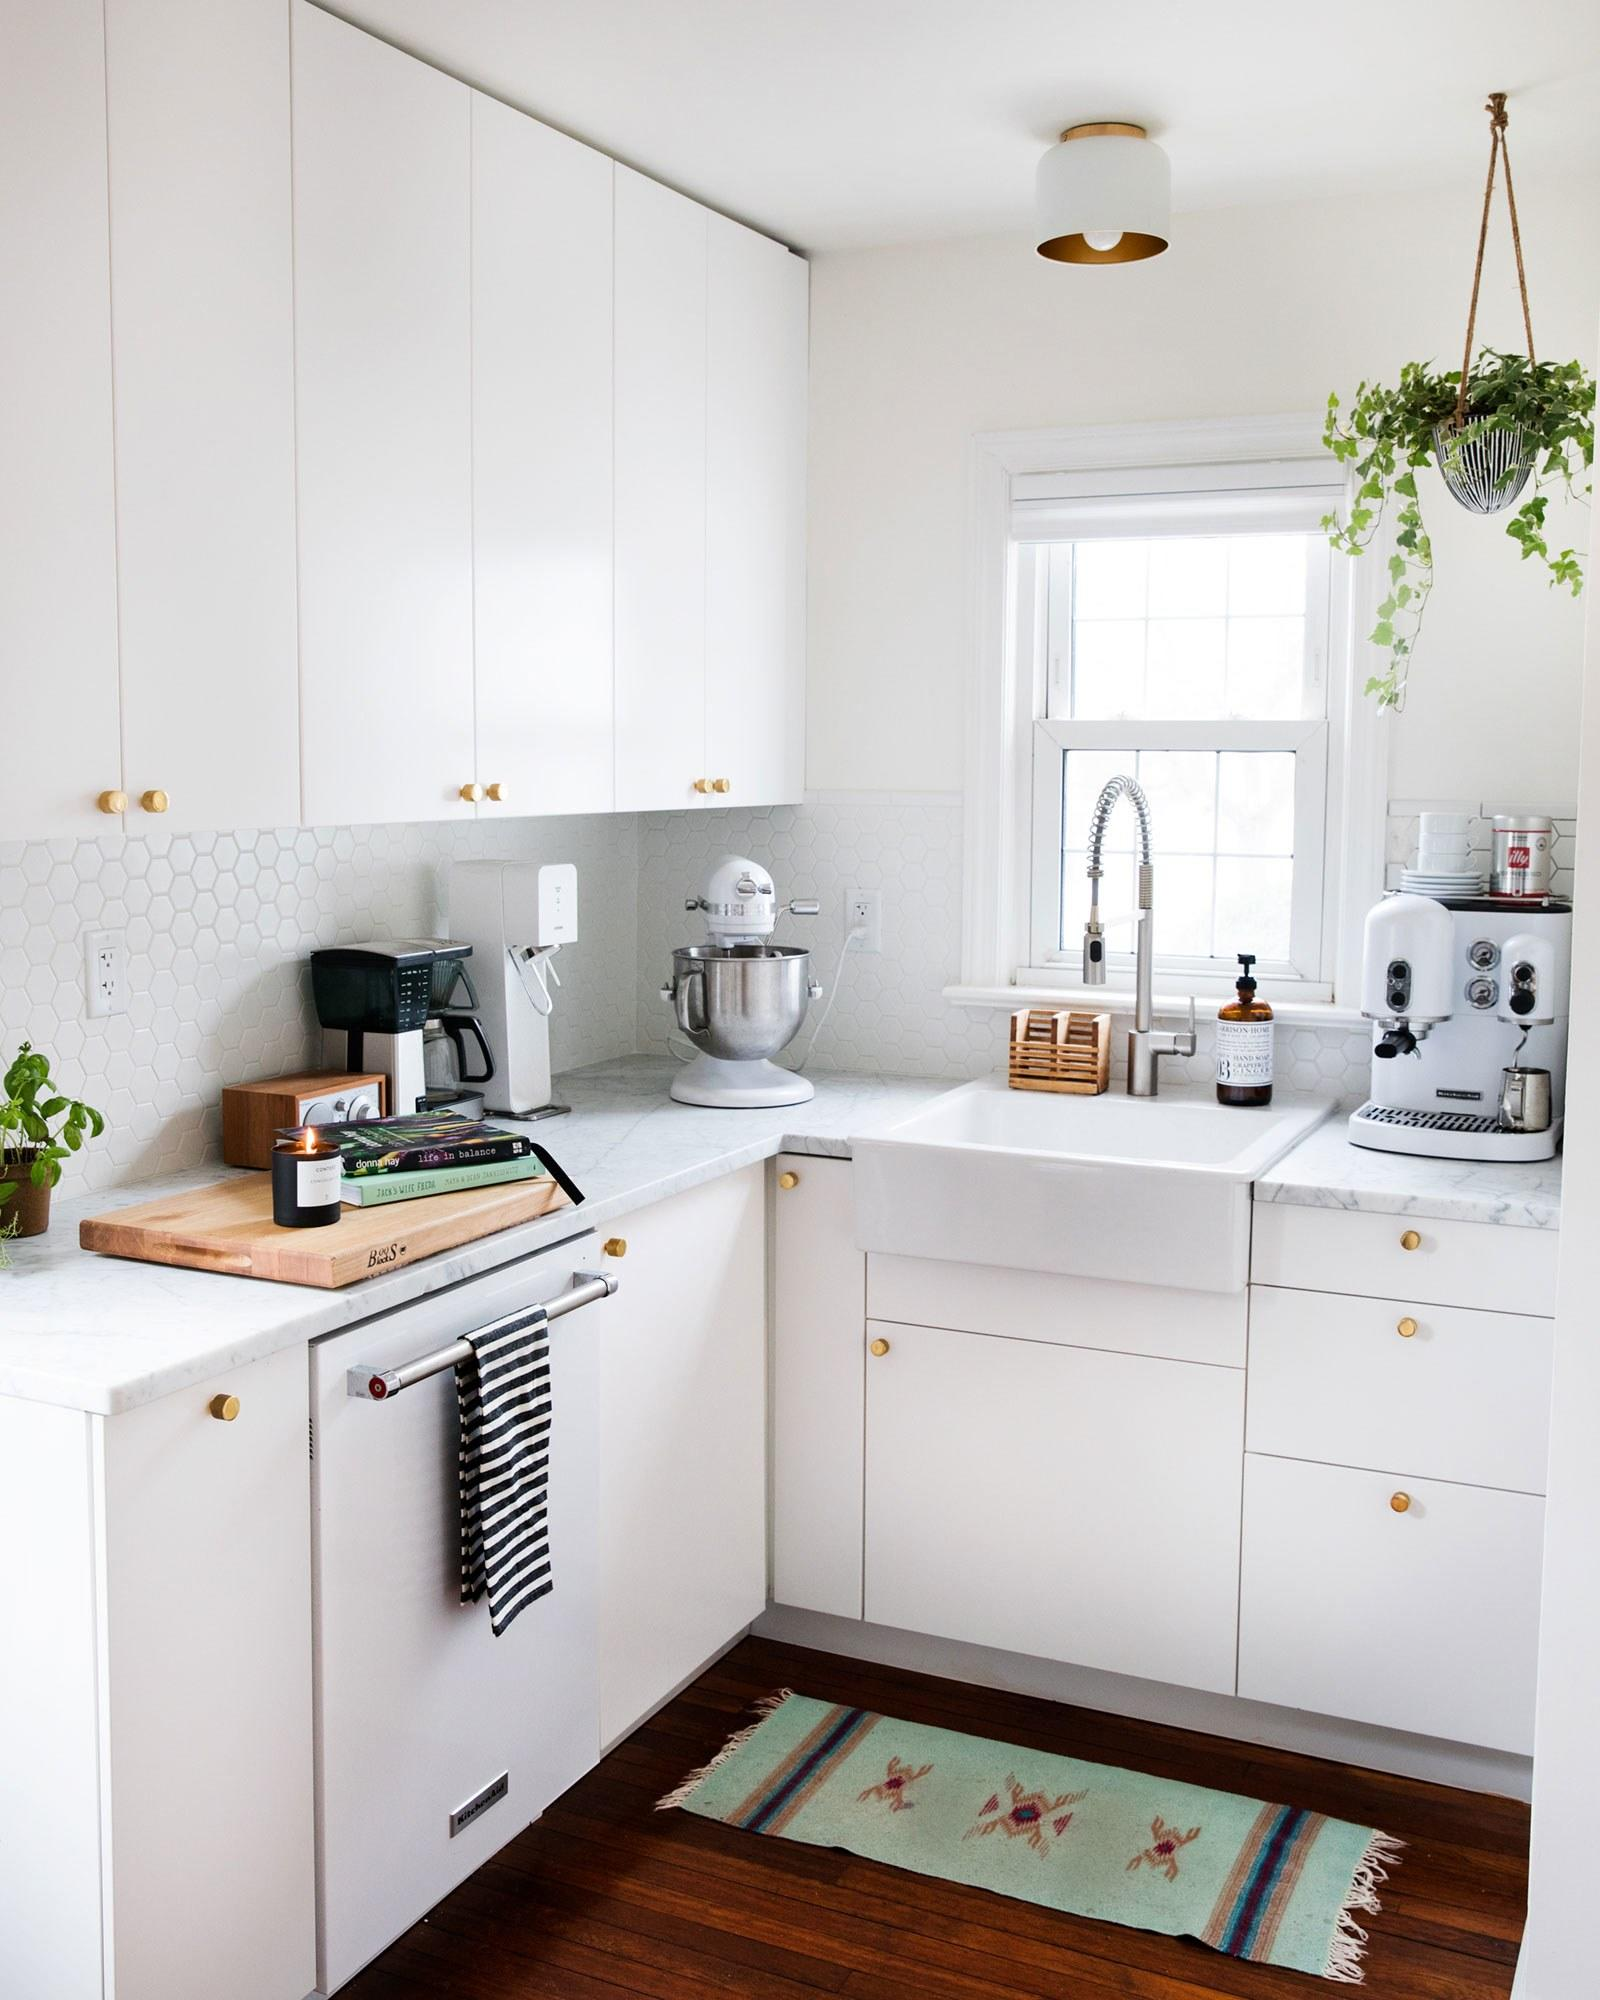 In Kitchen Reno Can I Make The Kitchen: We Reno'd A 900-Square-Foot House To Feel Way Roomier (and